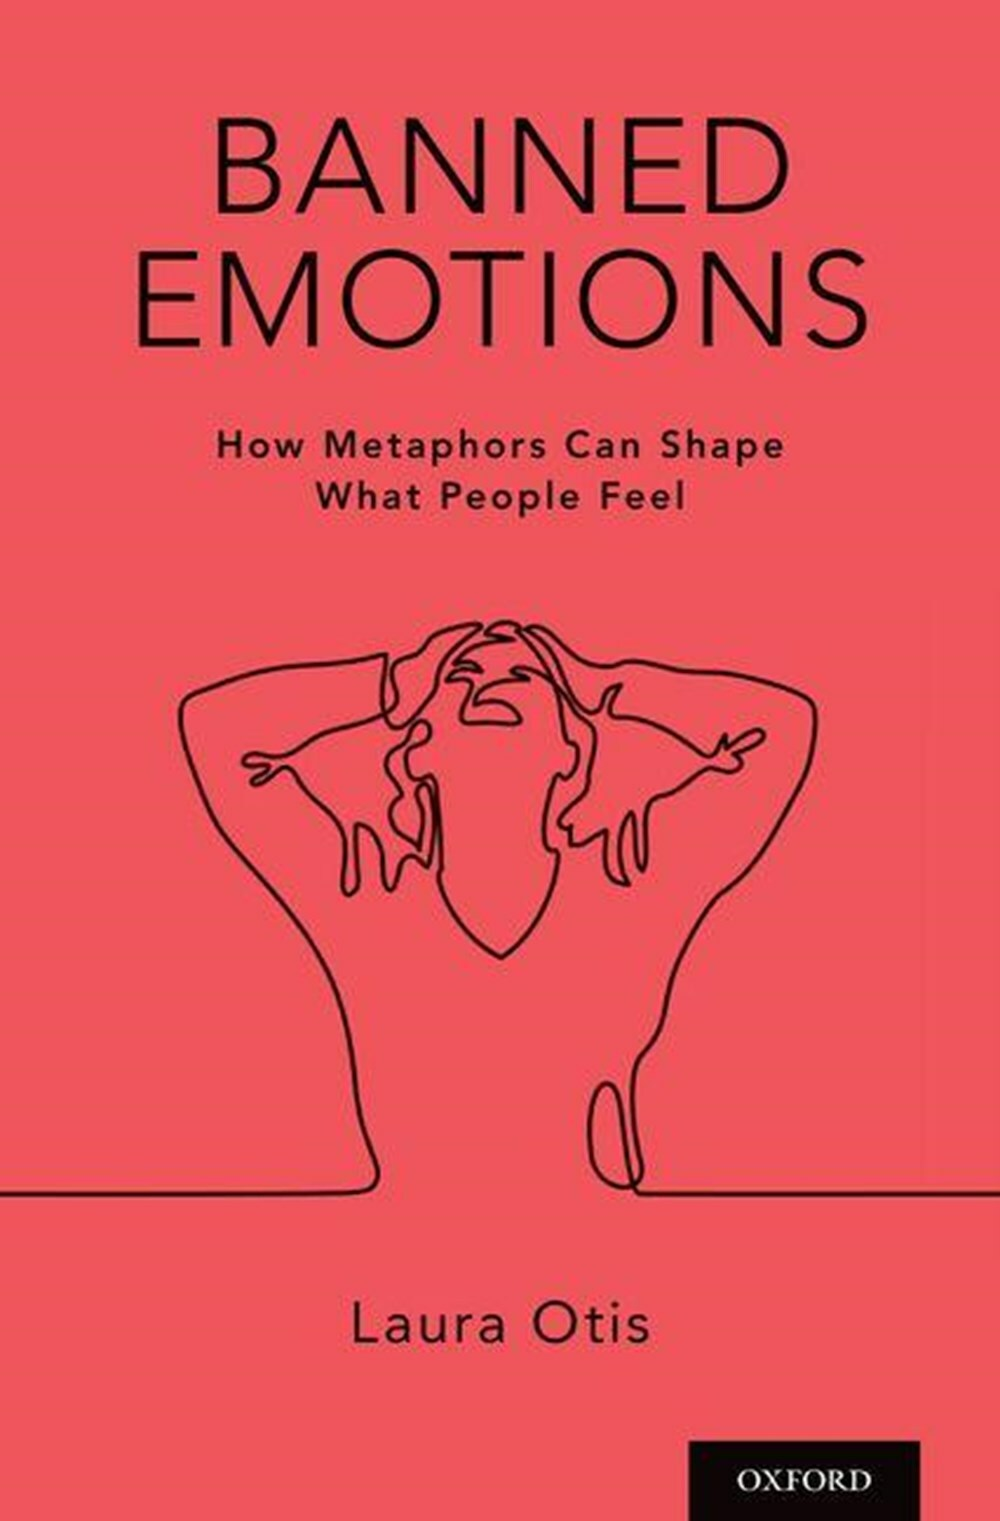 Banned Emotions by Laura Otis, Ph.D.